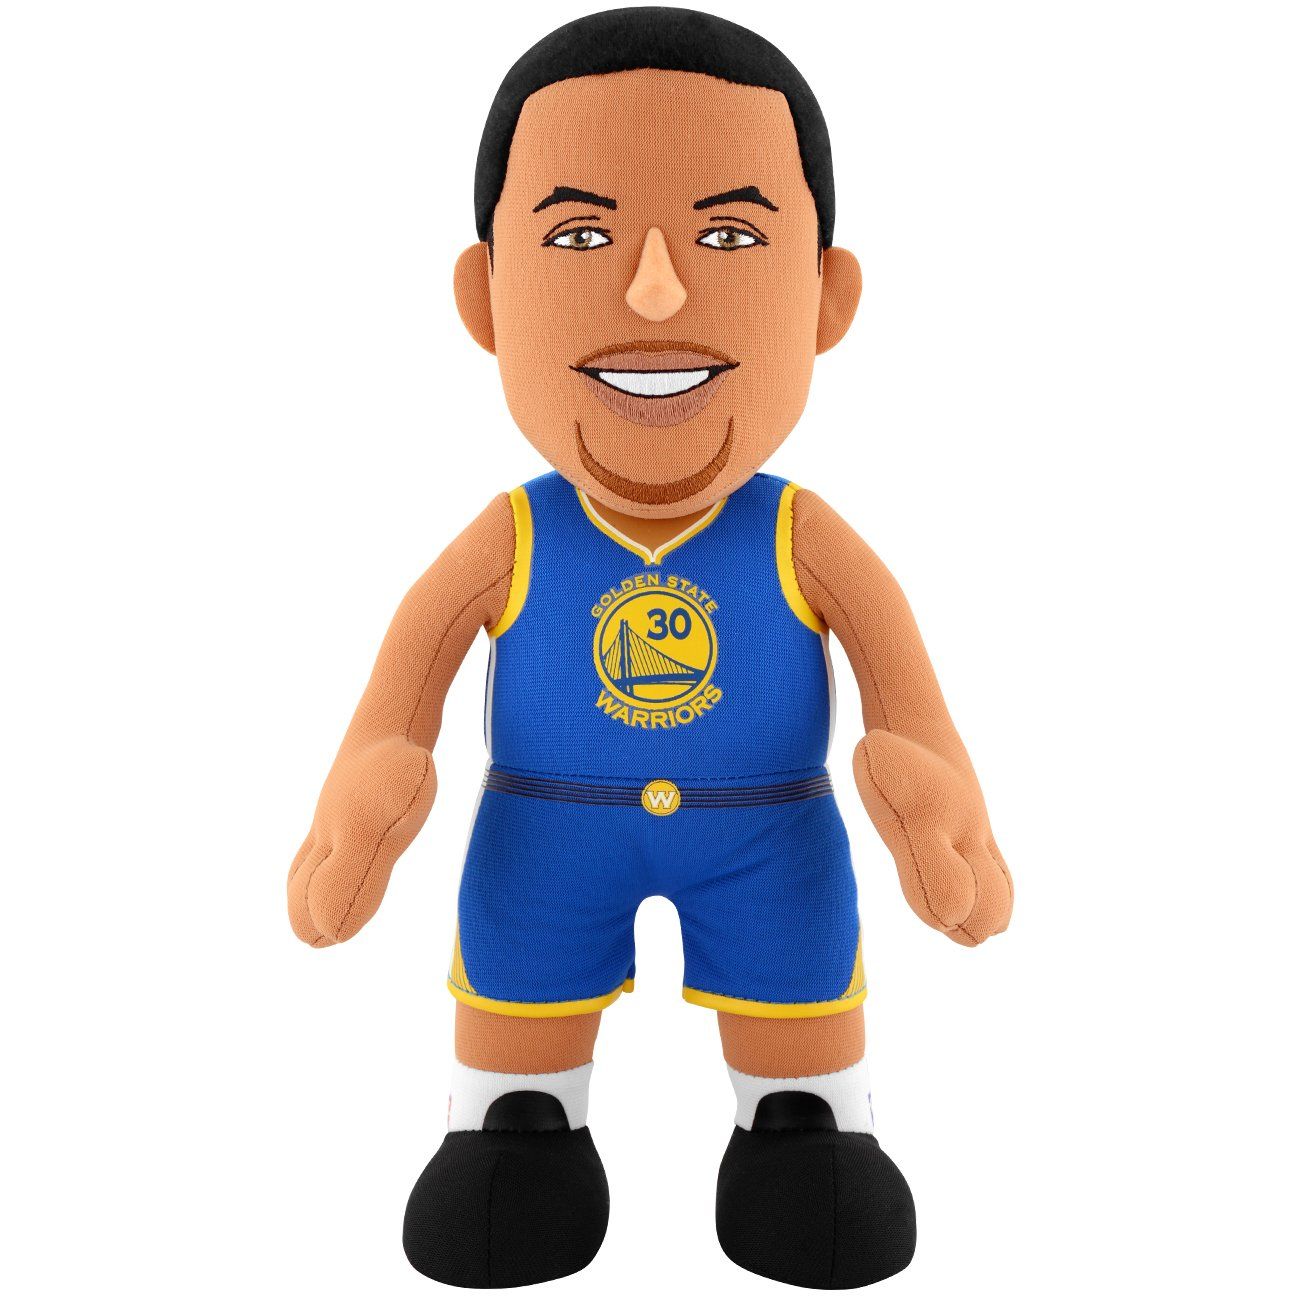 Poupluche (Bambola di peluche) Stephen Curry - Golden State Warriors - Icon Maglia Bleacher Creatures